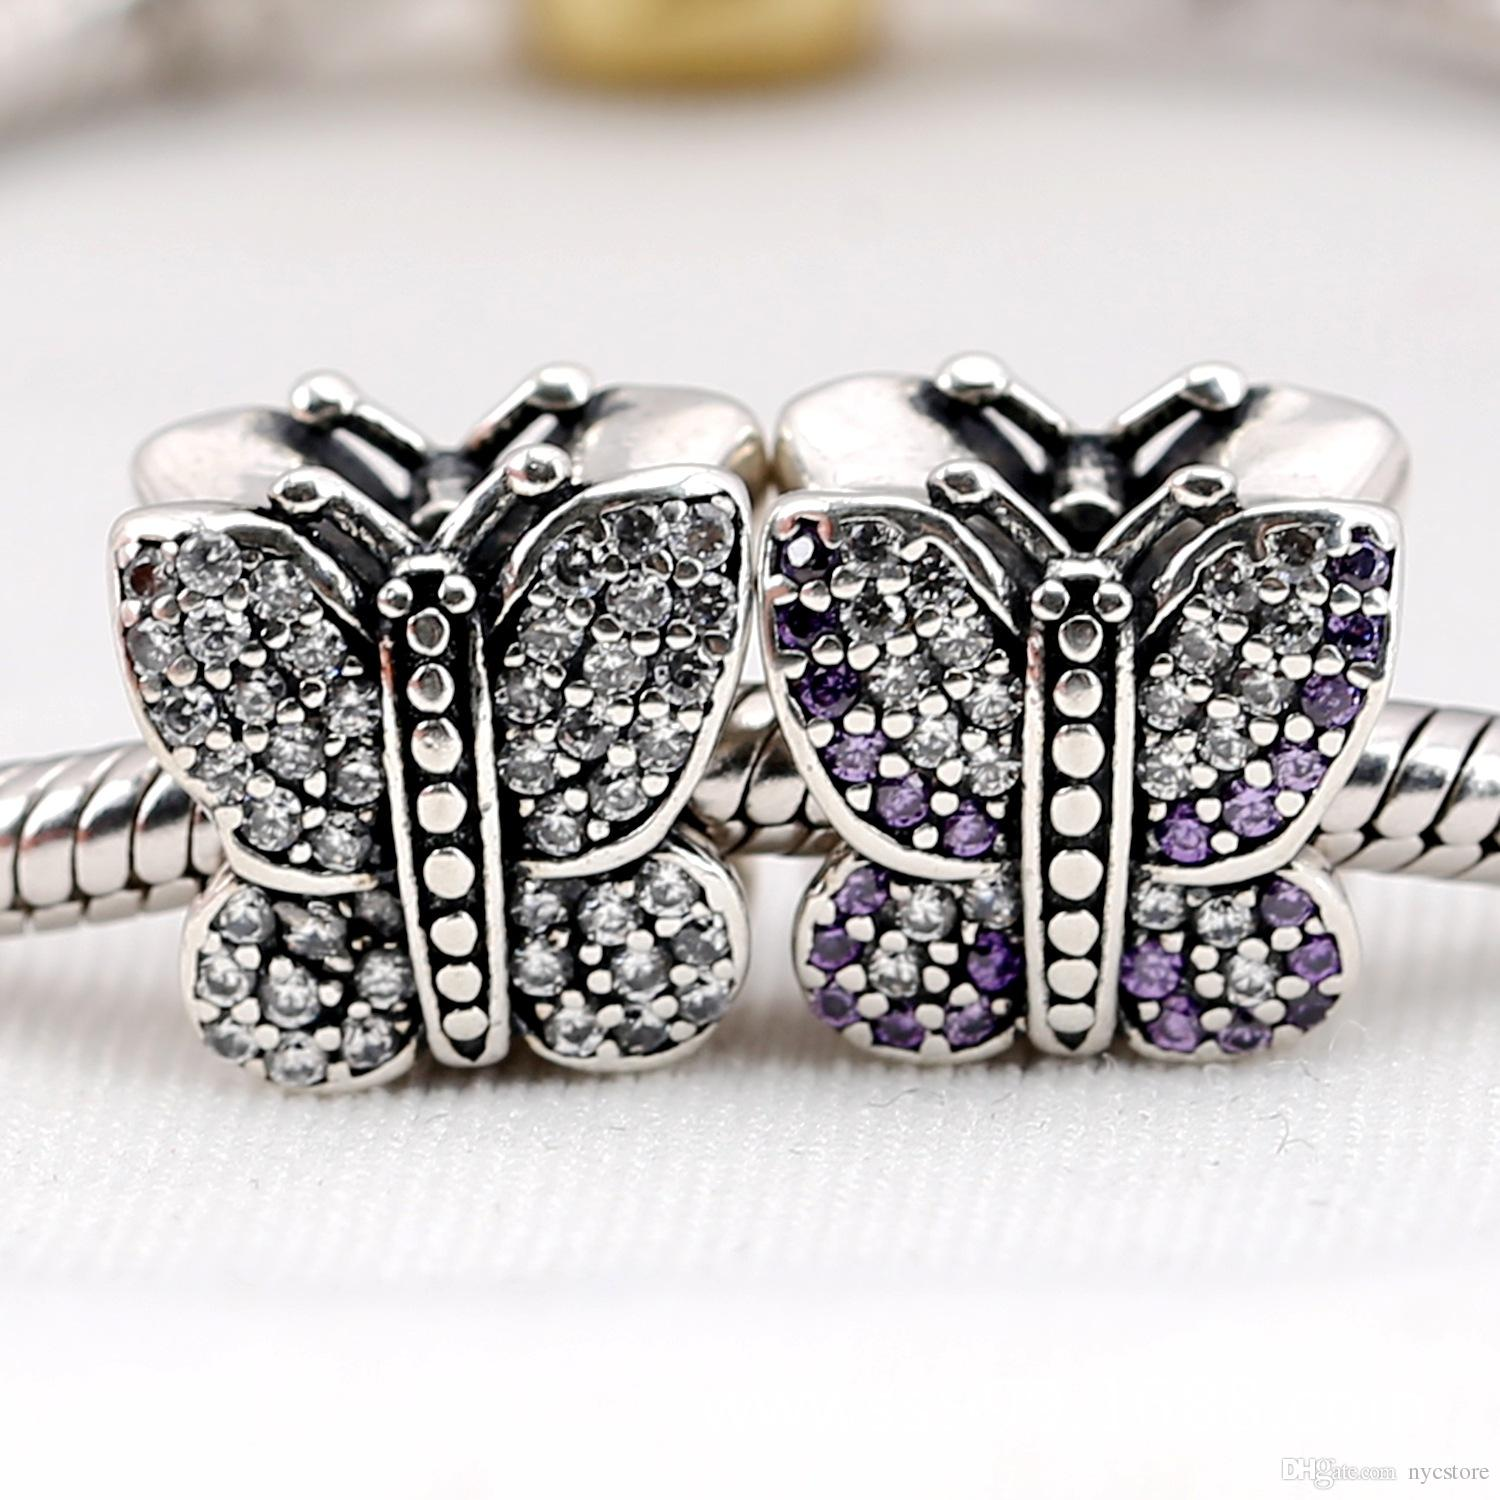 Stamped S925 925 Sterling Silver Sparkling Butterfly Charm Bead with CZ Fits European Style Jewelry Bracelets Necklaces Pendants